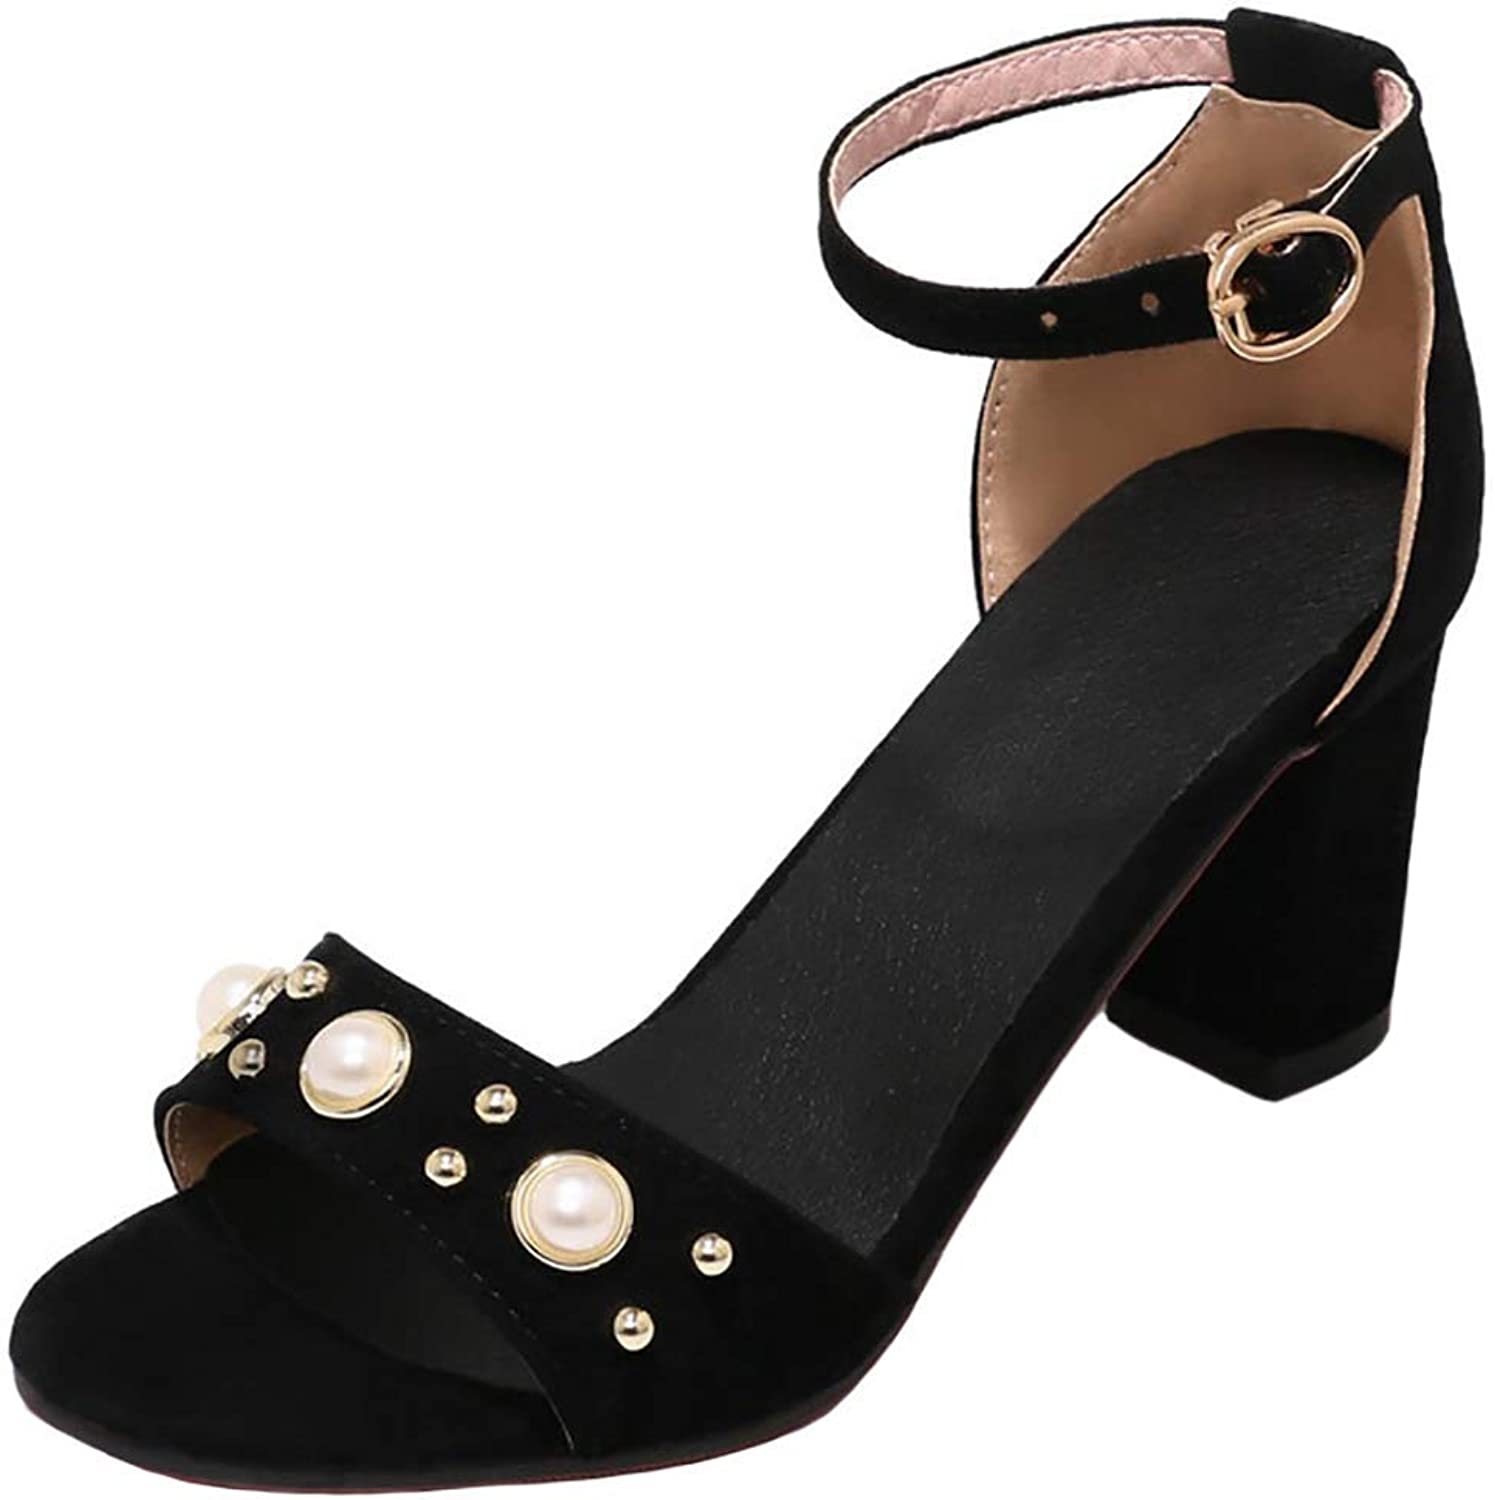 Ghssheh Women's Elegant Beaded Open Toe Buckle Ankle Strap Mid Chunky Heel Pumps Sandals Pink 4.5 M US